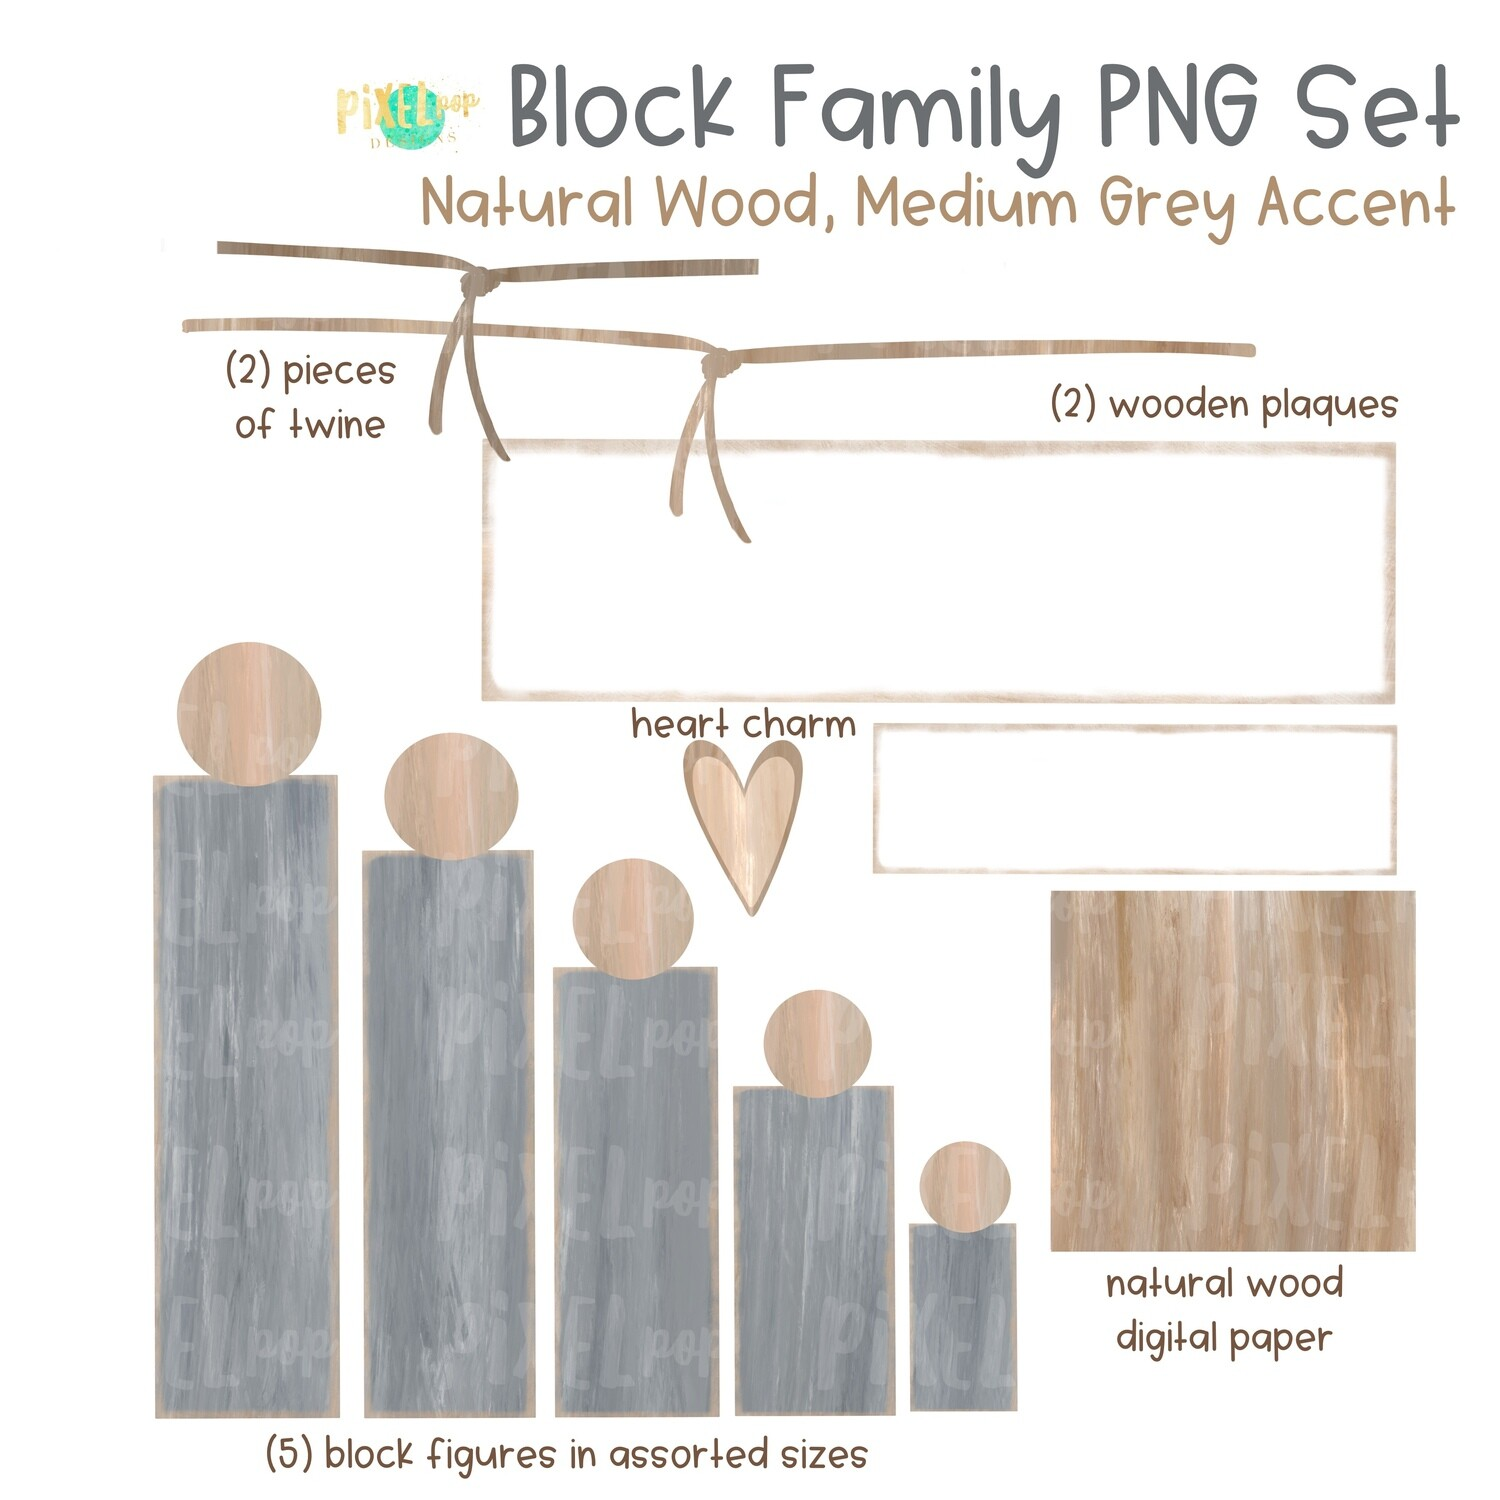 Wooden Block Family PNG Set Natural Wood Medium Grey Accents with Accessories | Family Portrait Art | Wooden Blocks | Family Design